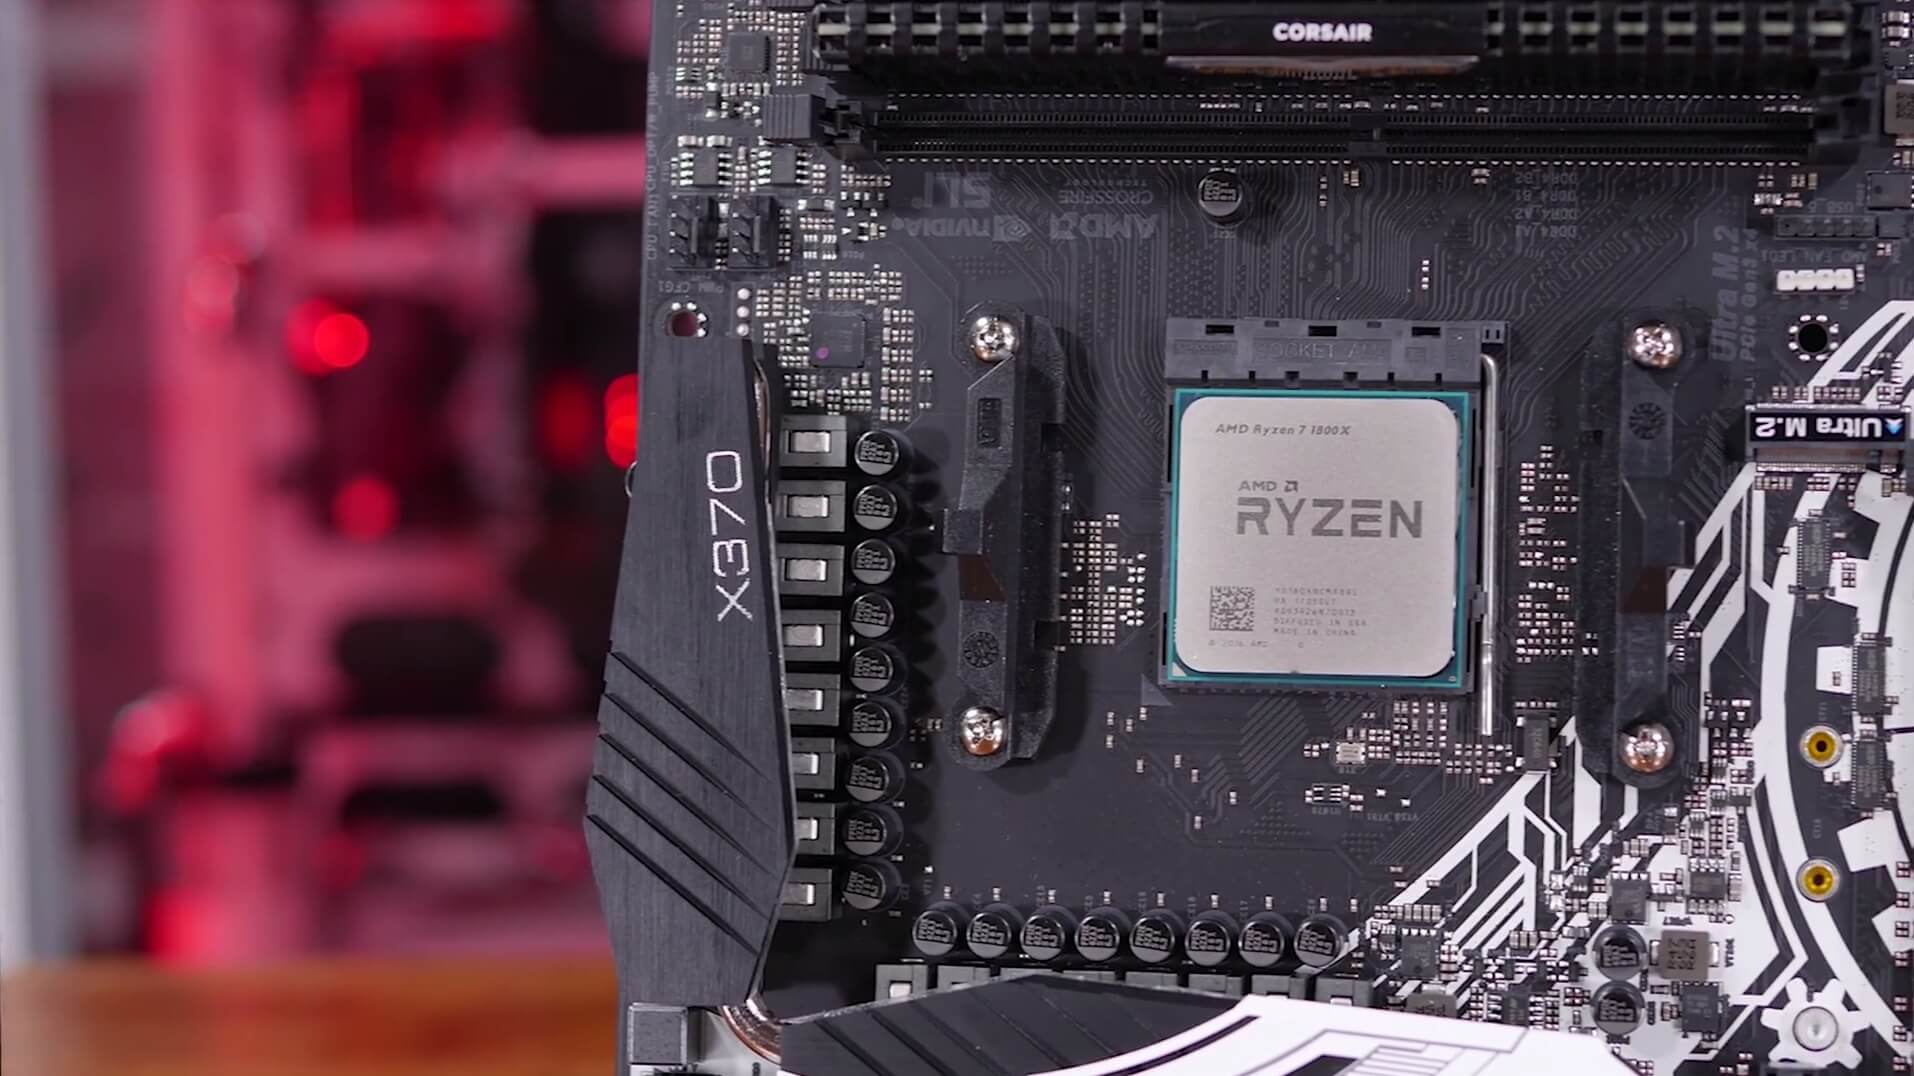 Does Ryzen Perform Better with AMD GPUs? - TechSpot